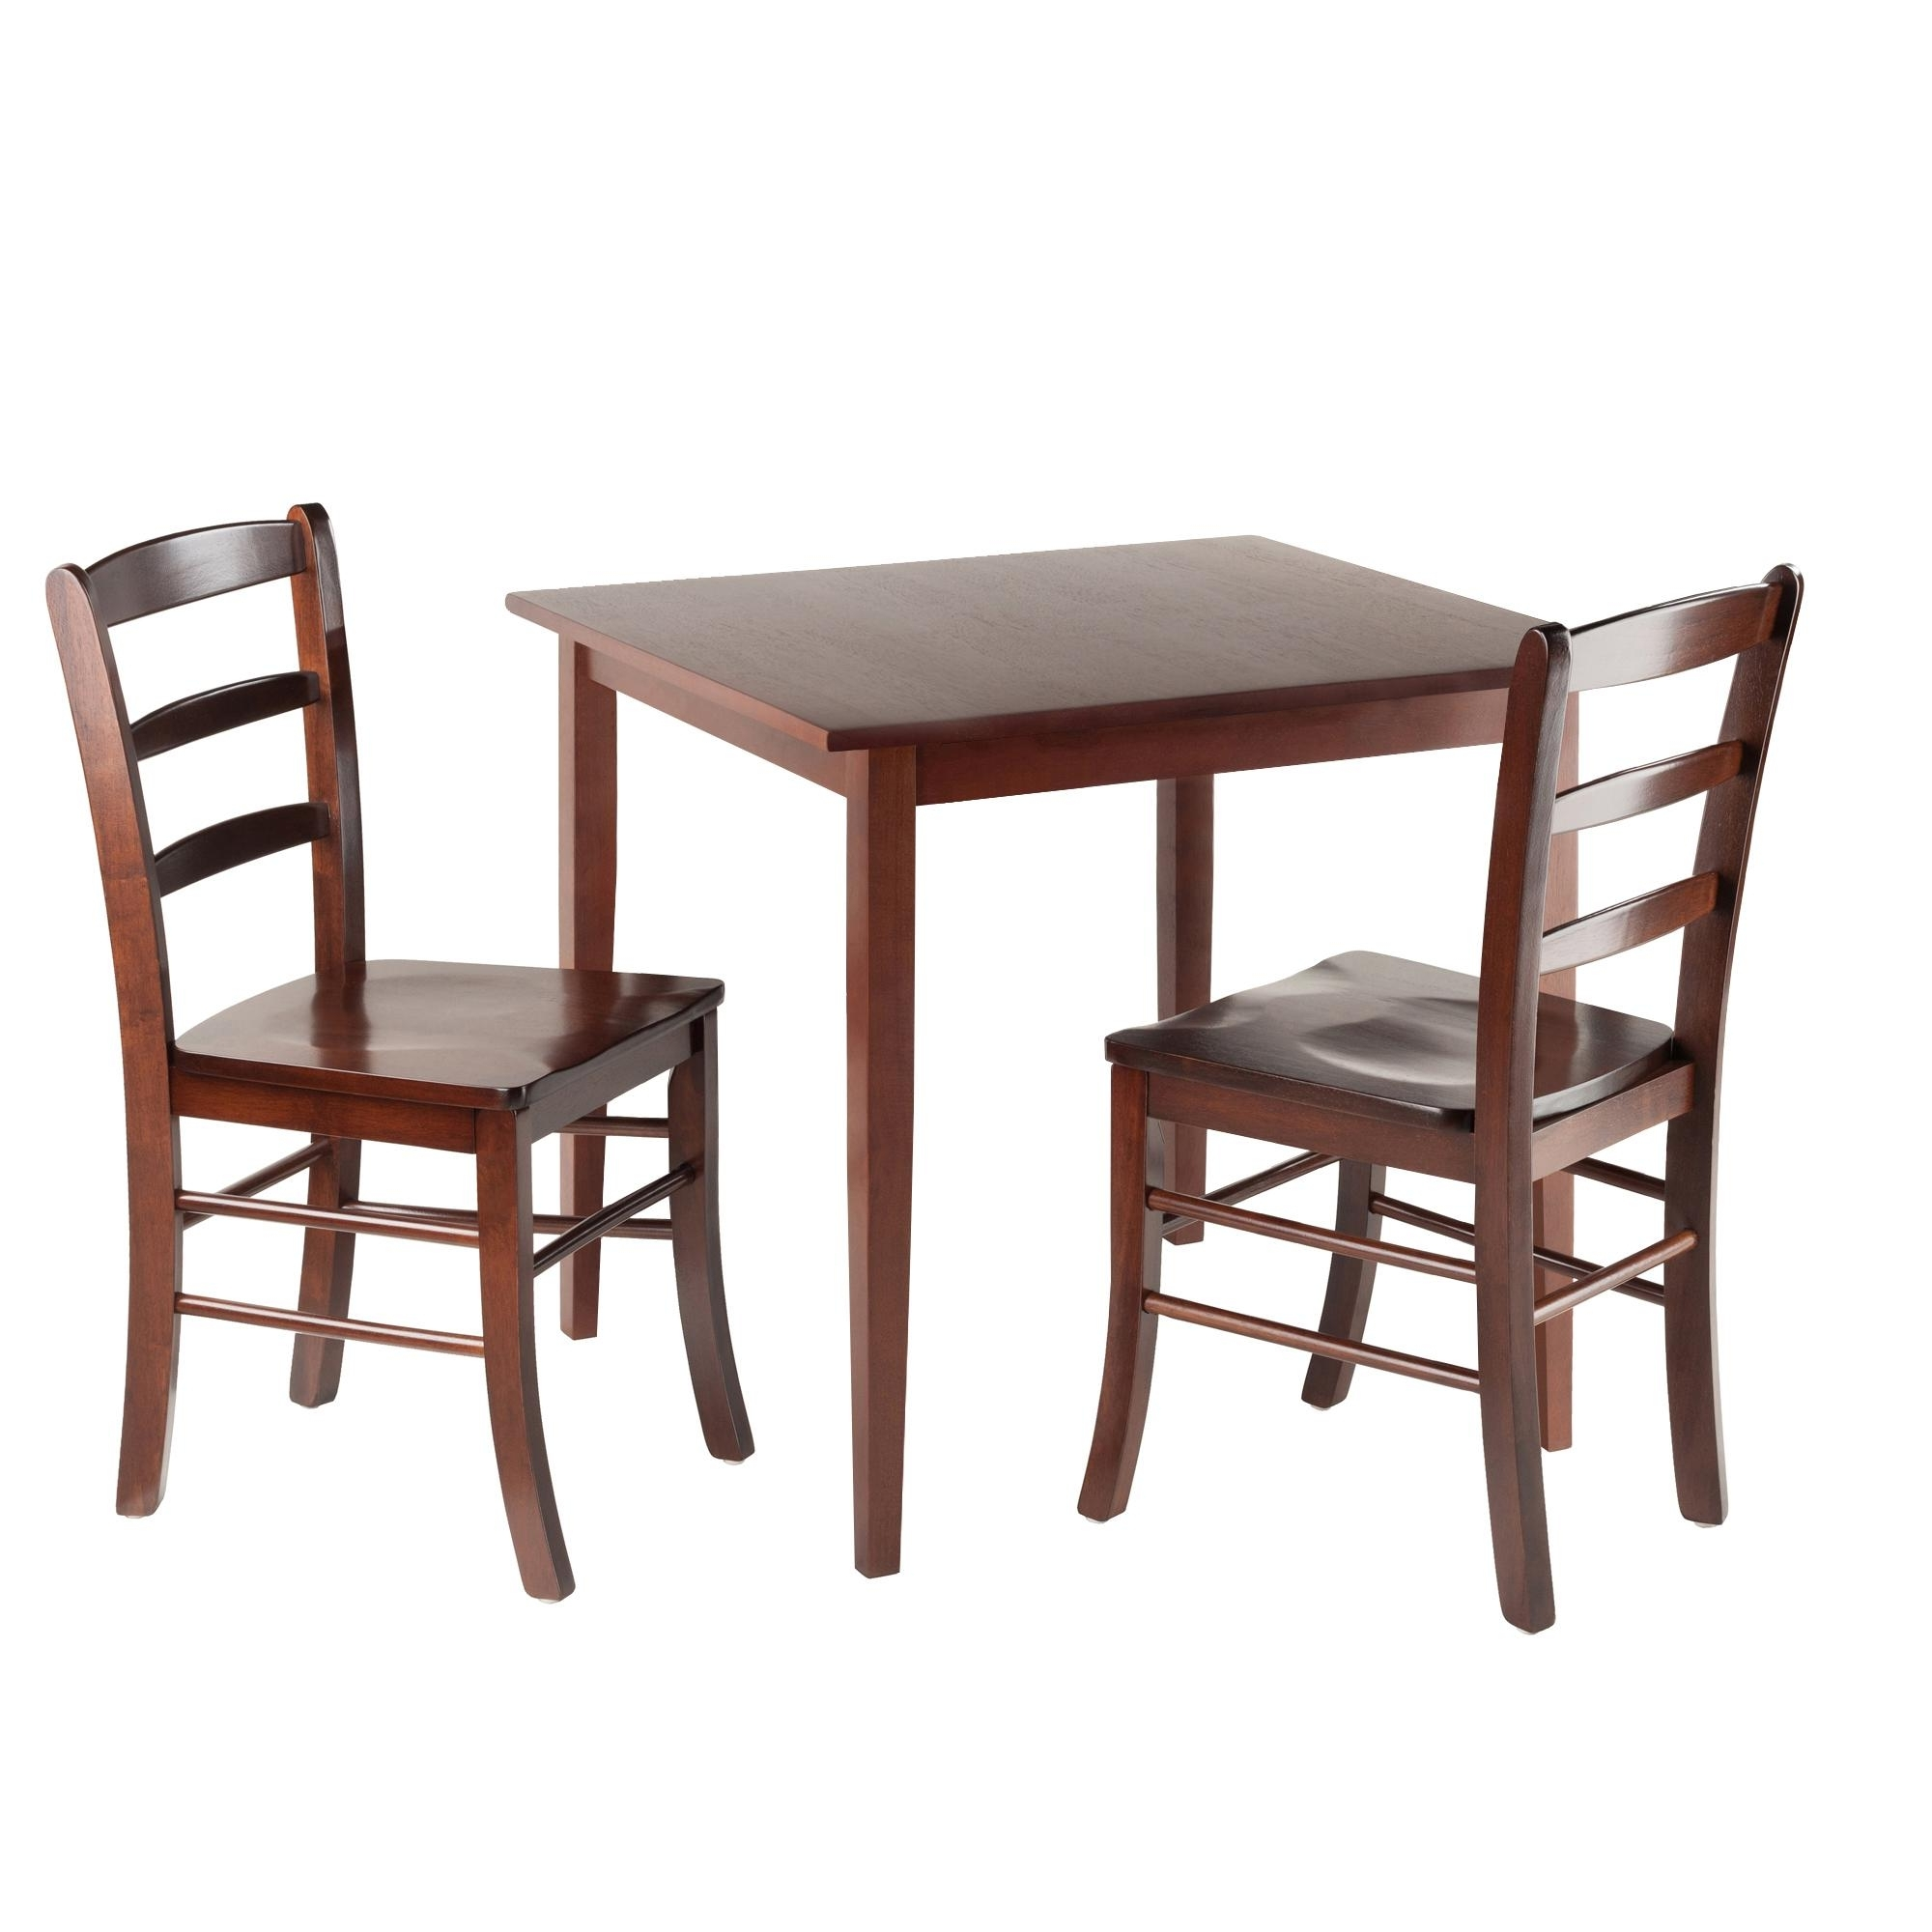 Dining Table Sets For 2 Within Most Popular Amazon – Winsome Groveland Square Dining Table With 2 Chairs,  (View 3 of 25)